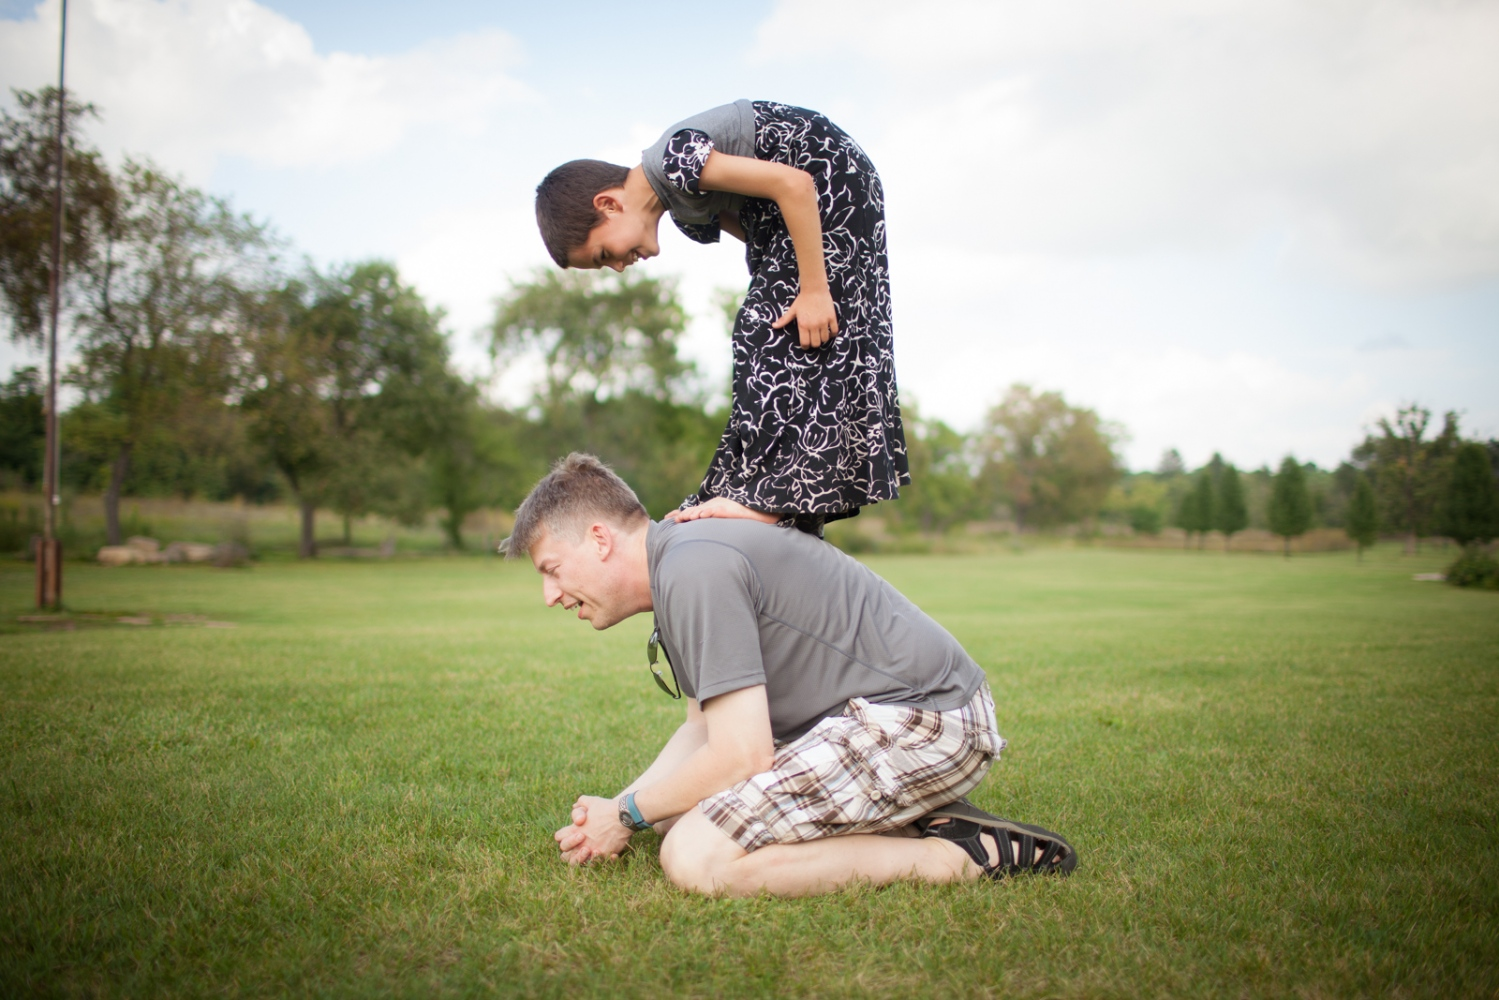 A child plays leapfrog with his father.